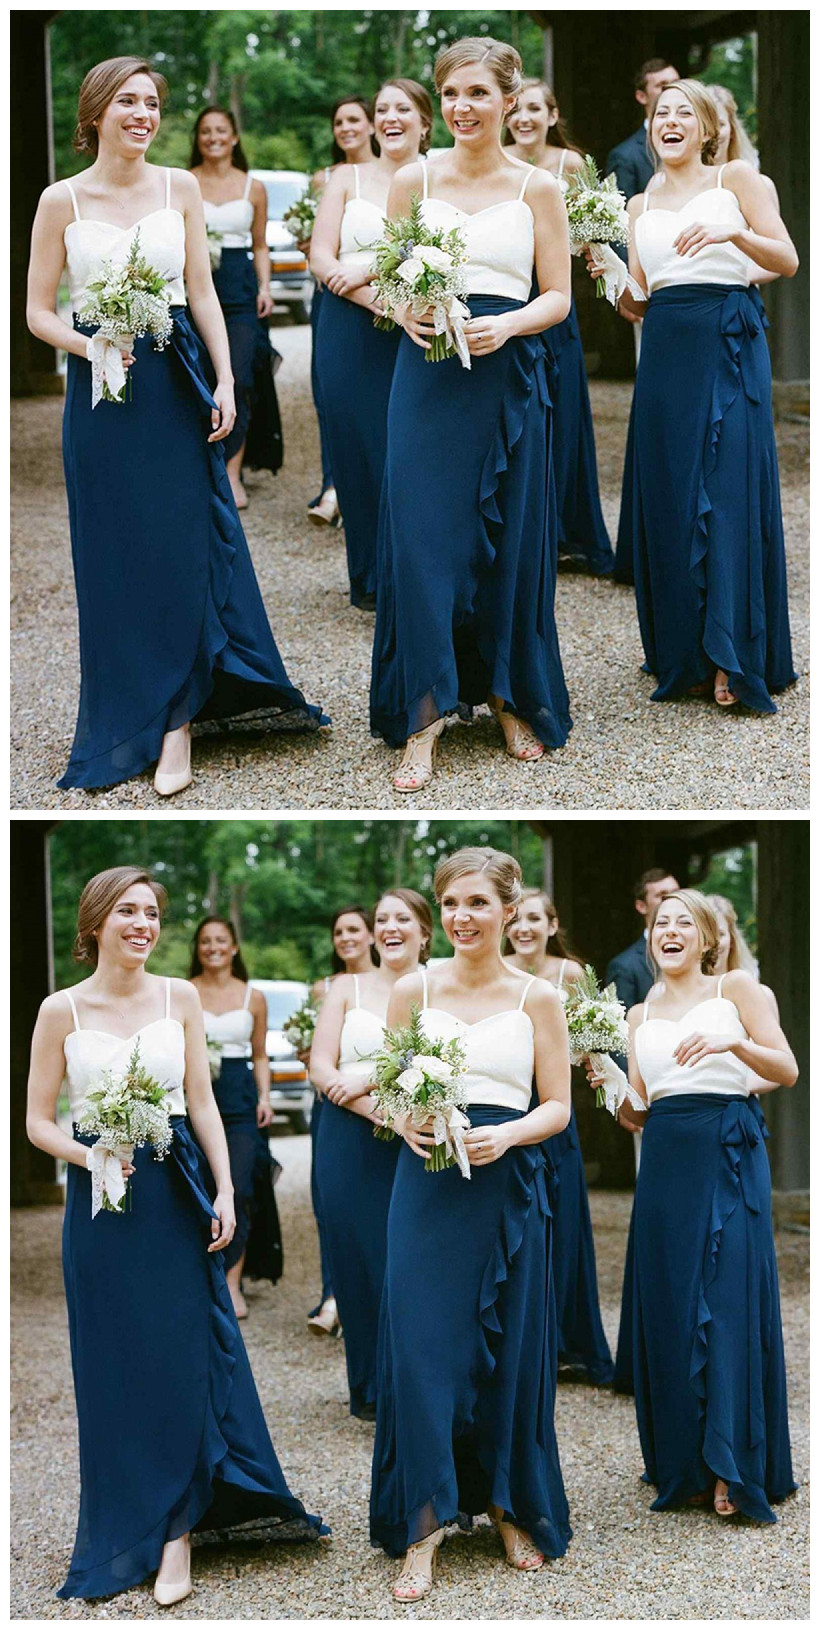 0b79f02da64 A-Line Spaghetti Straps Dark Blue Chiffon Bridesmaid Dress with Ruffles